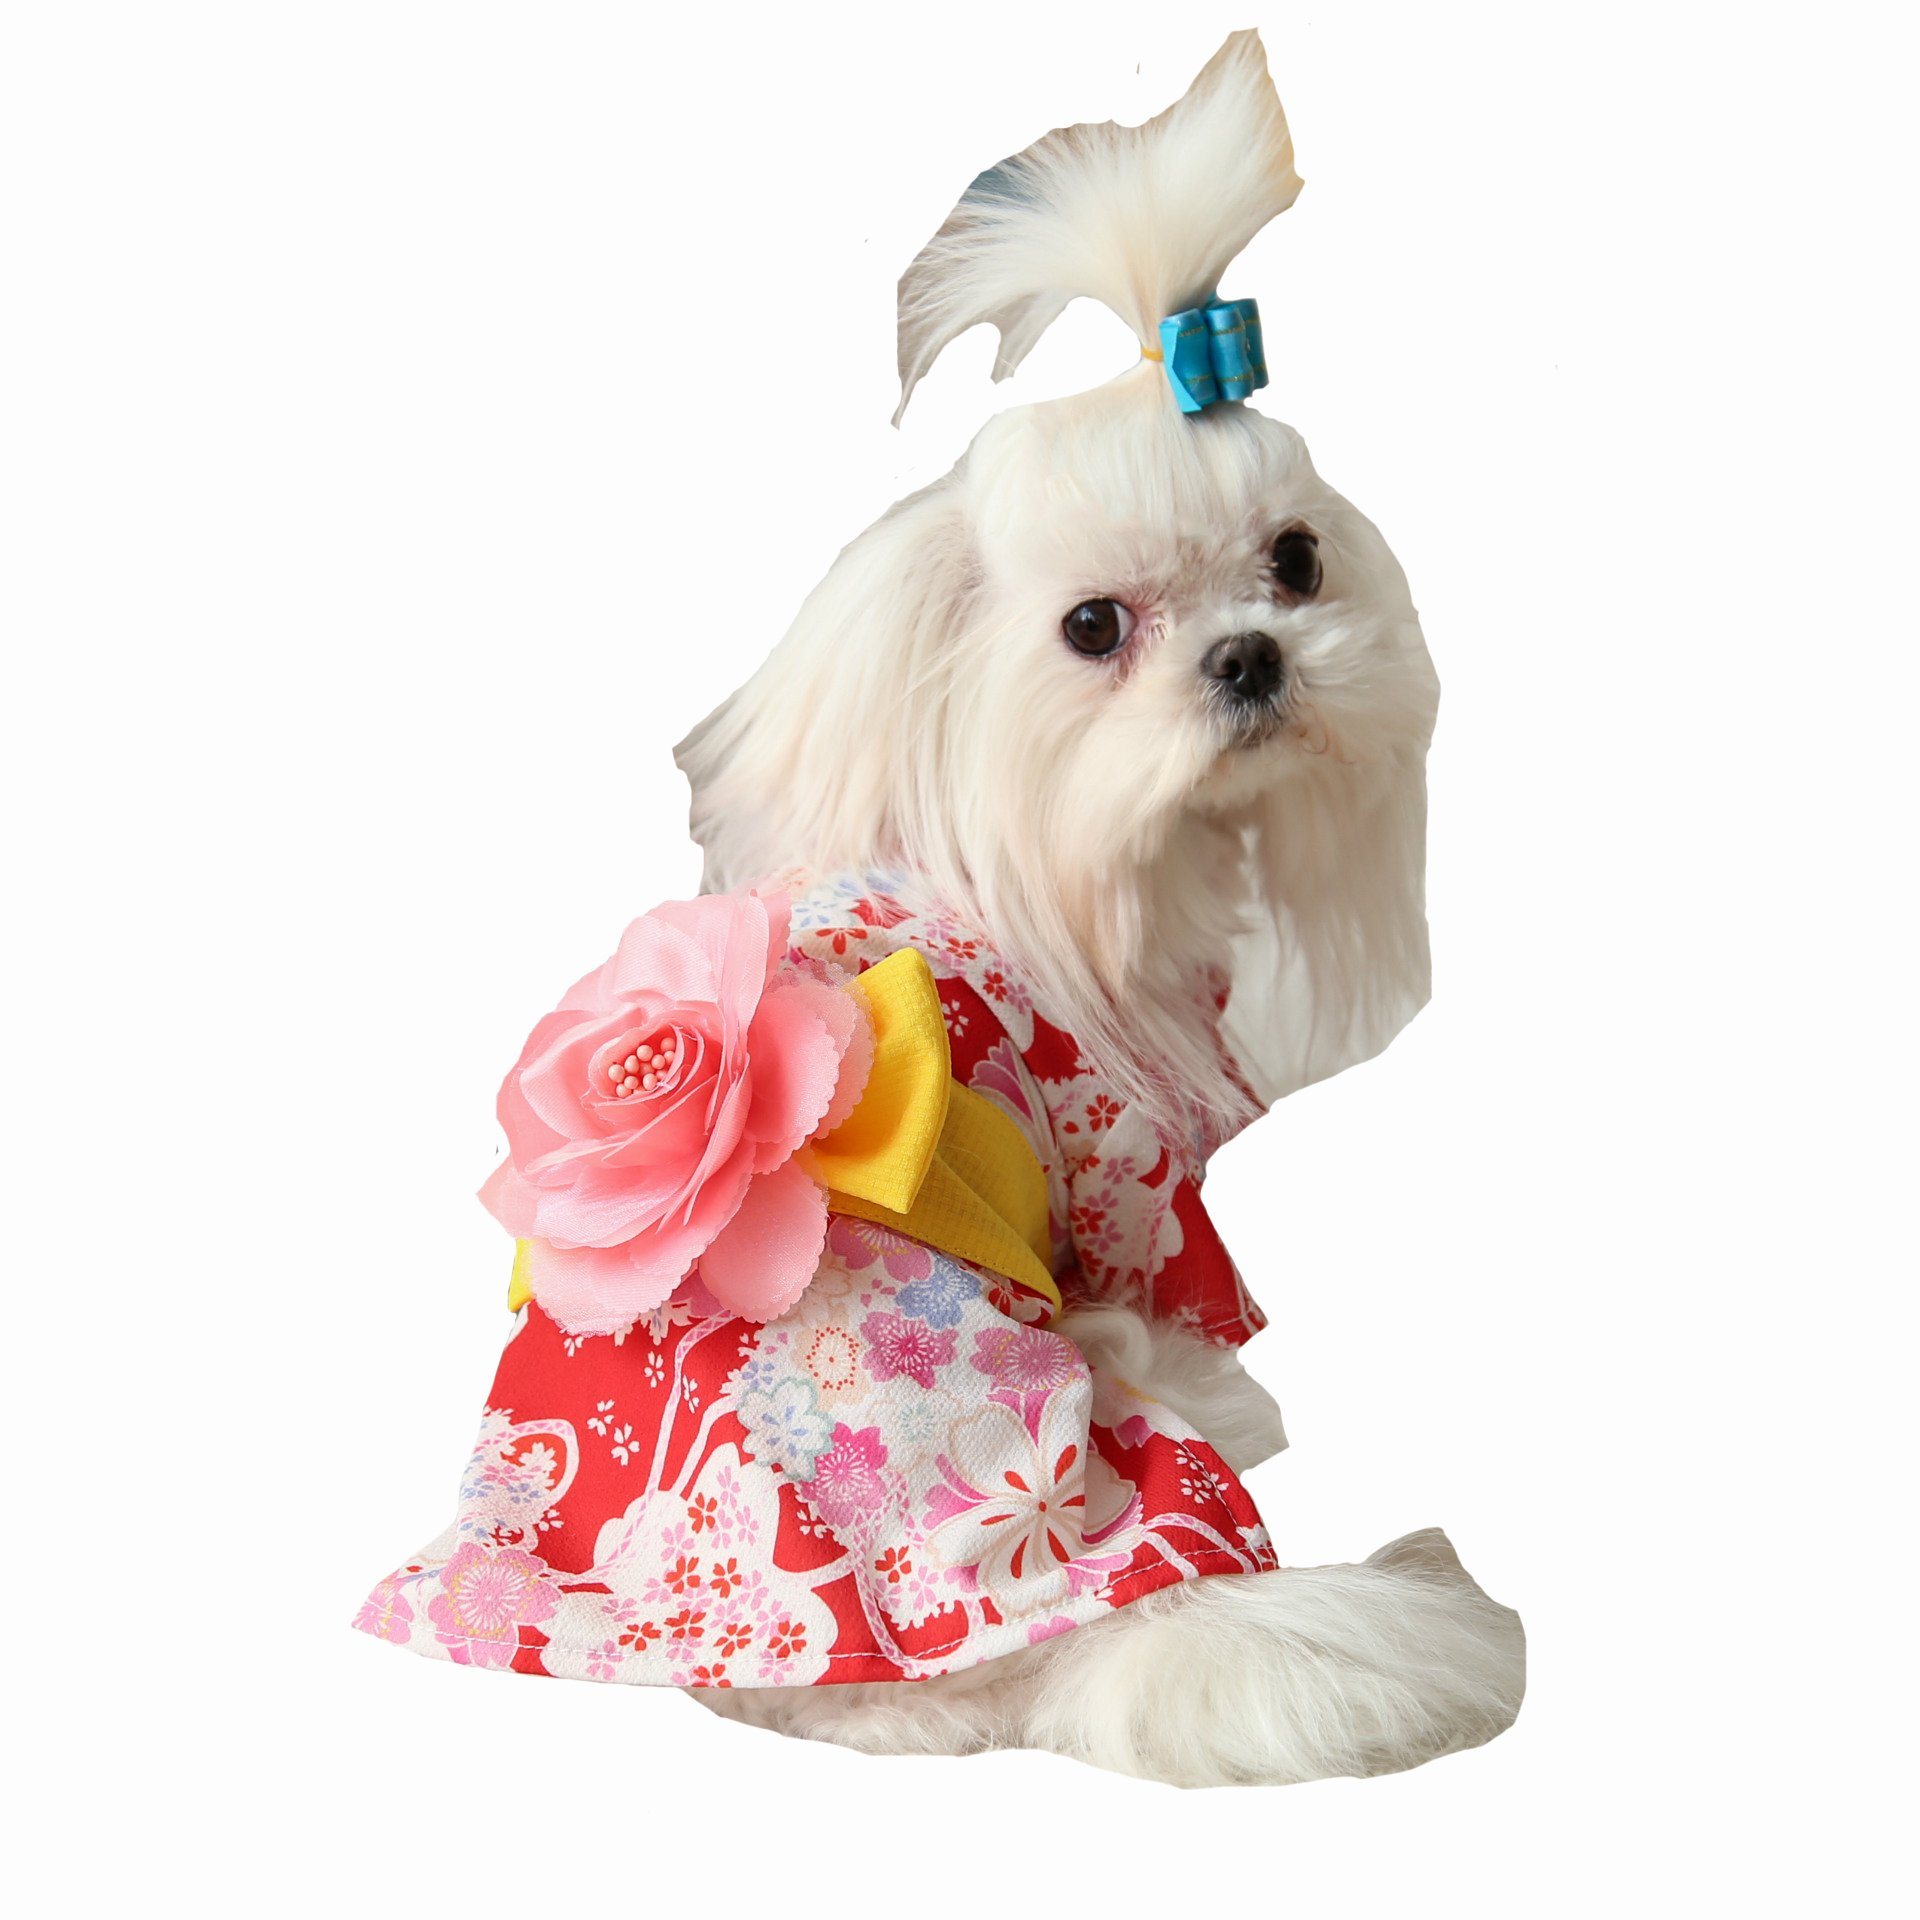 Dog Dress Kimono ,Pet Dress with Printed Floser for S/M/L Pets with Fastener Closure By BONAWEN(Red,M)